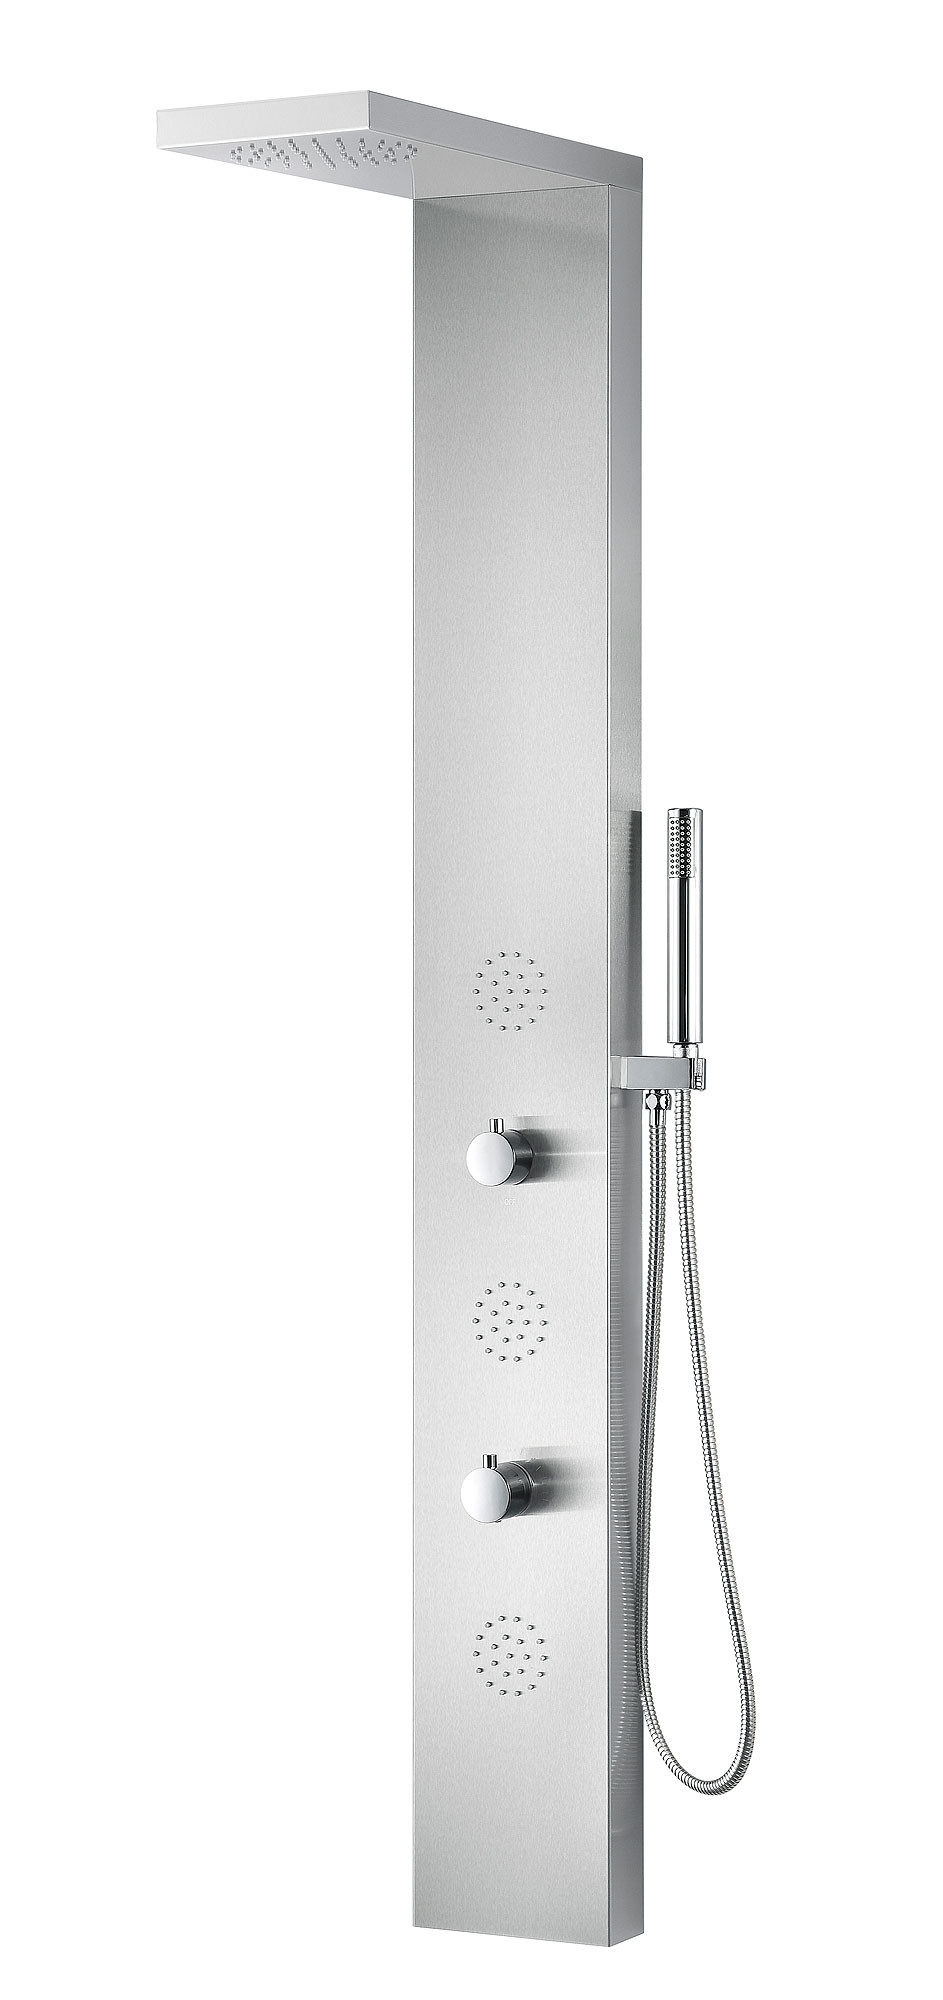 ANZZI SP-AZ039 Brushed Stainless Steel Tundra Shower Panel With Rain Shower